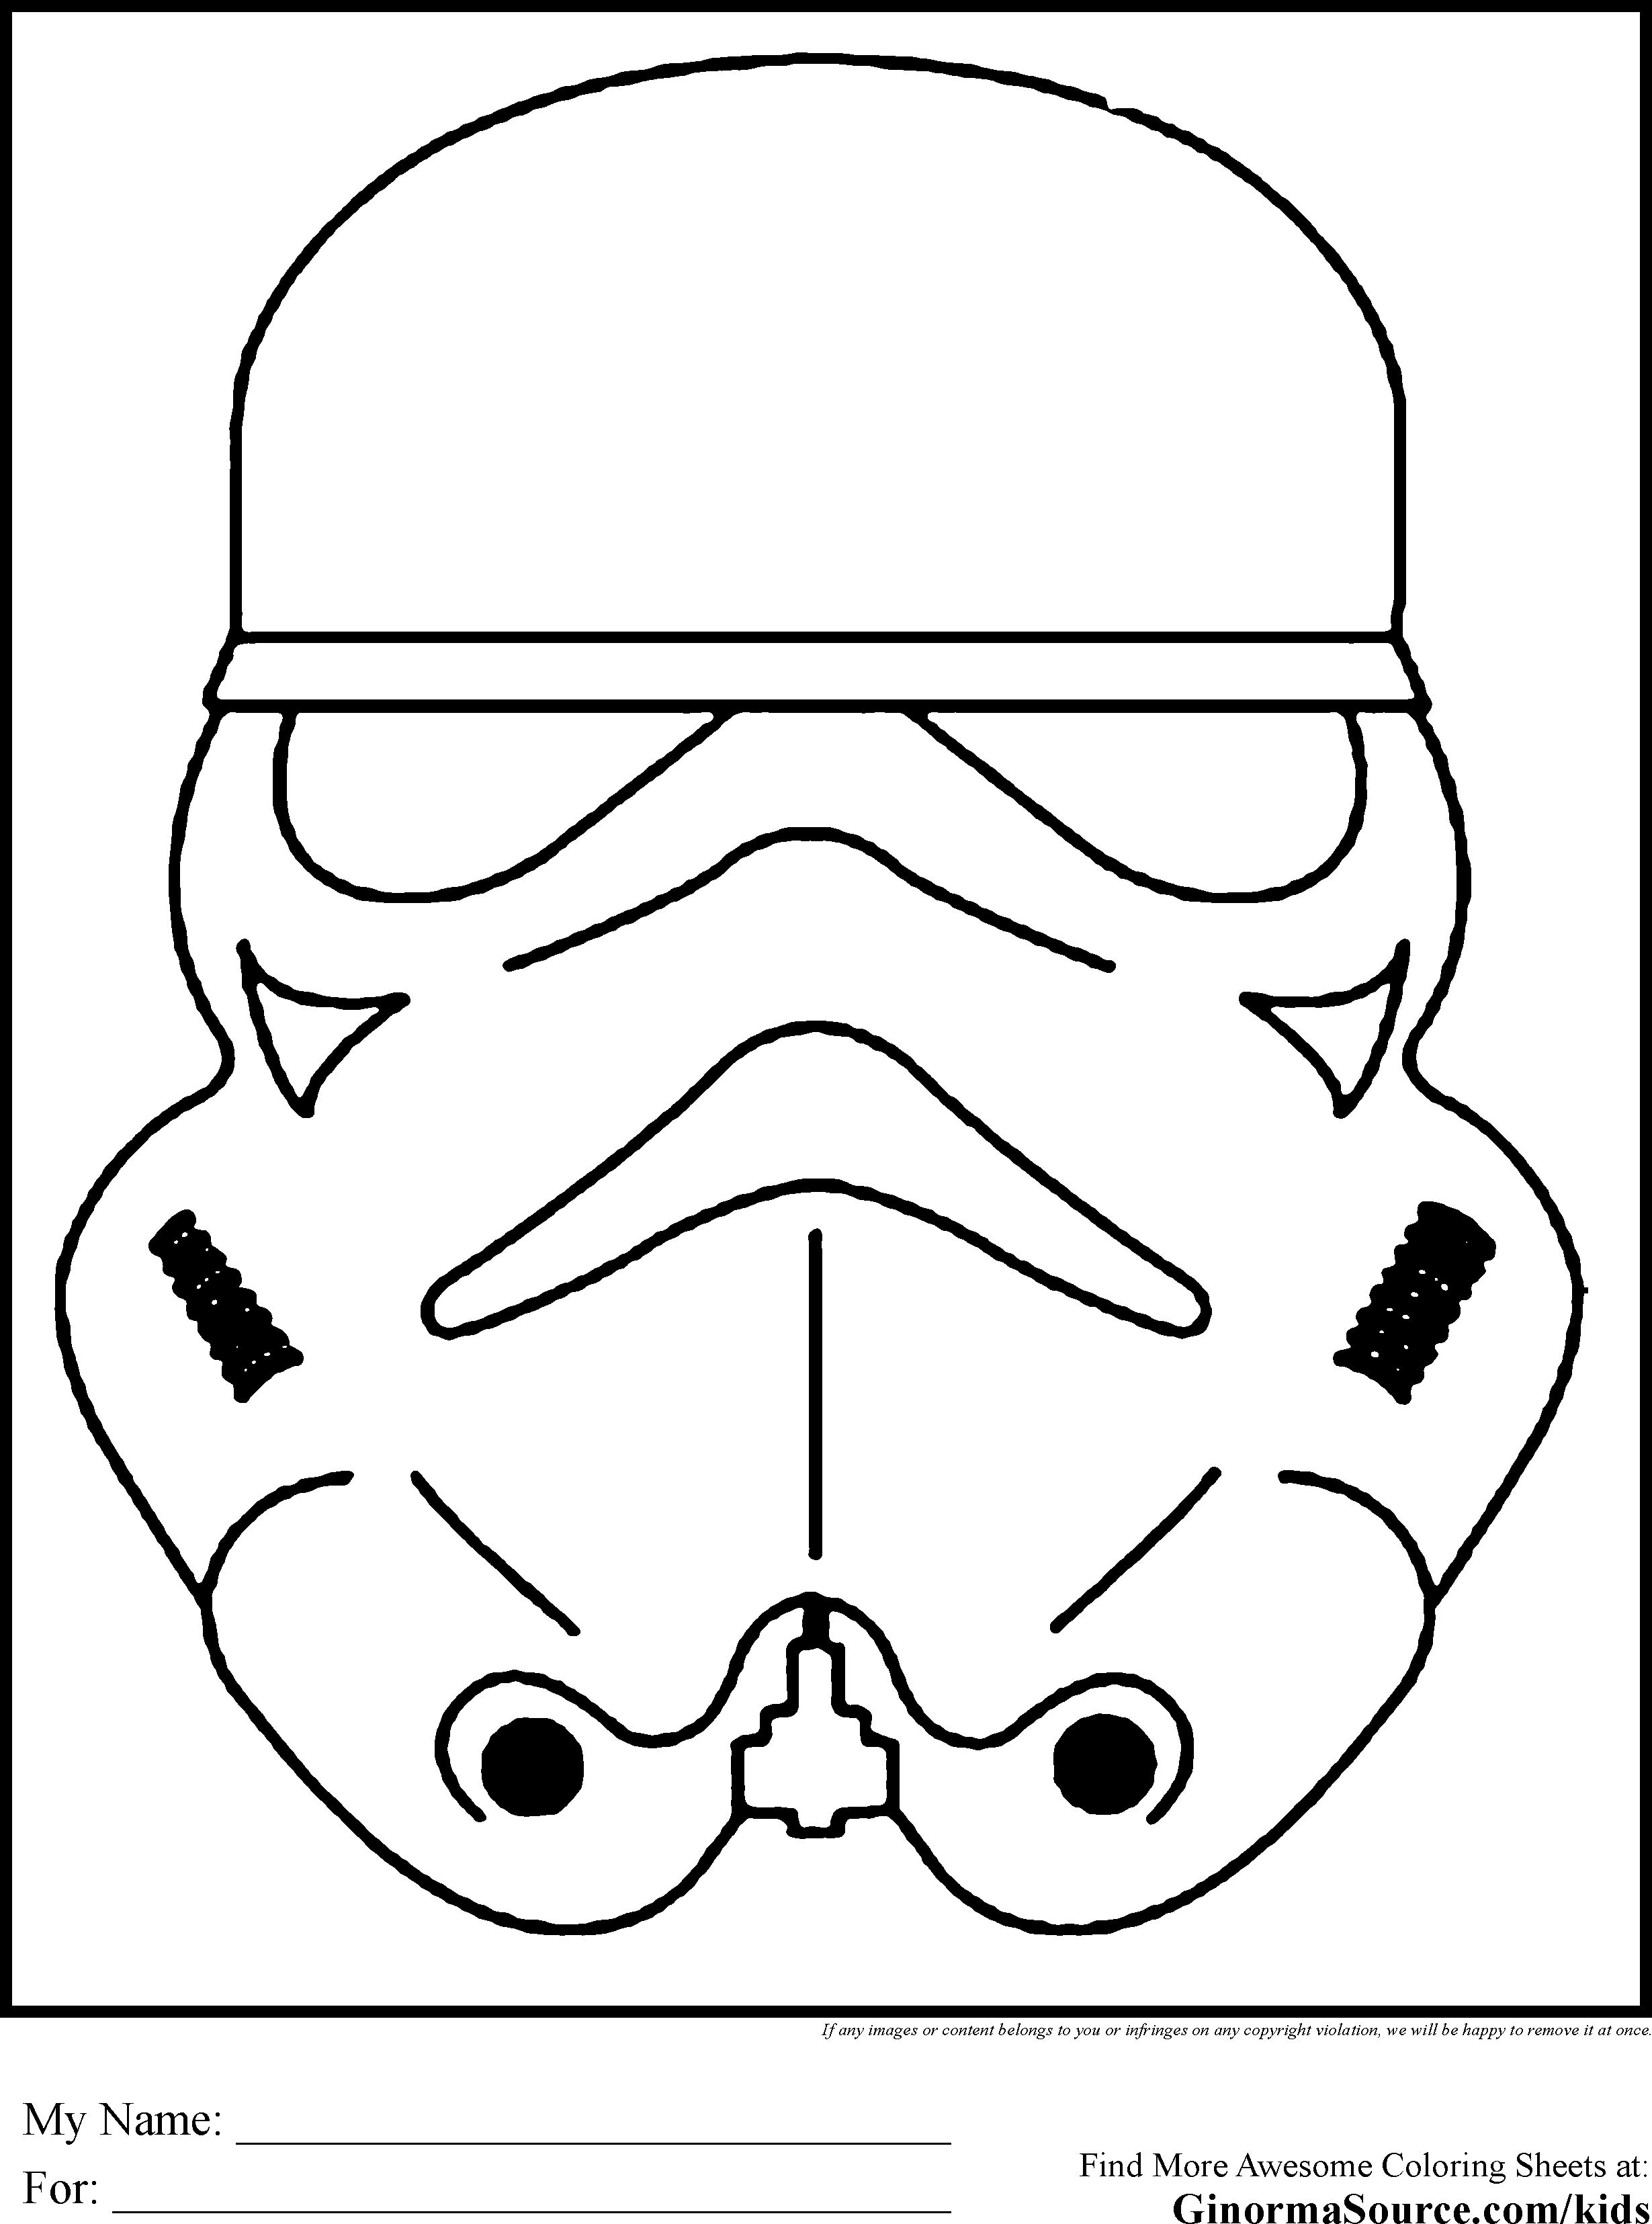 27 Inspiration Picture Of Stormtrooper Coloring Page Entitlementtrap Com Star Wars Colors Star Wars Mask Printable Star Wars Masks